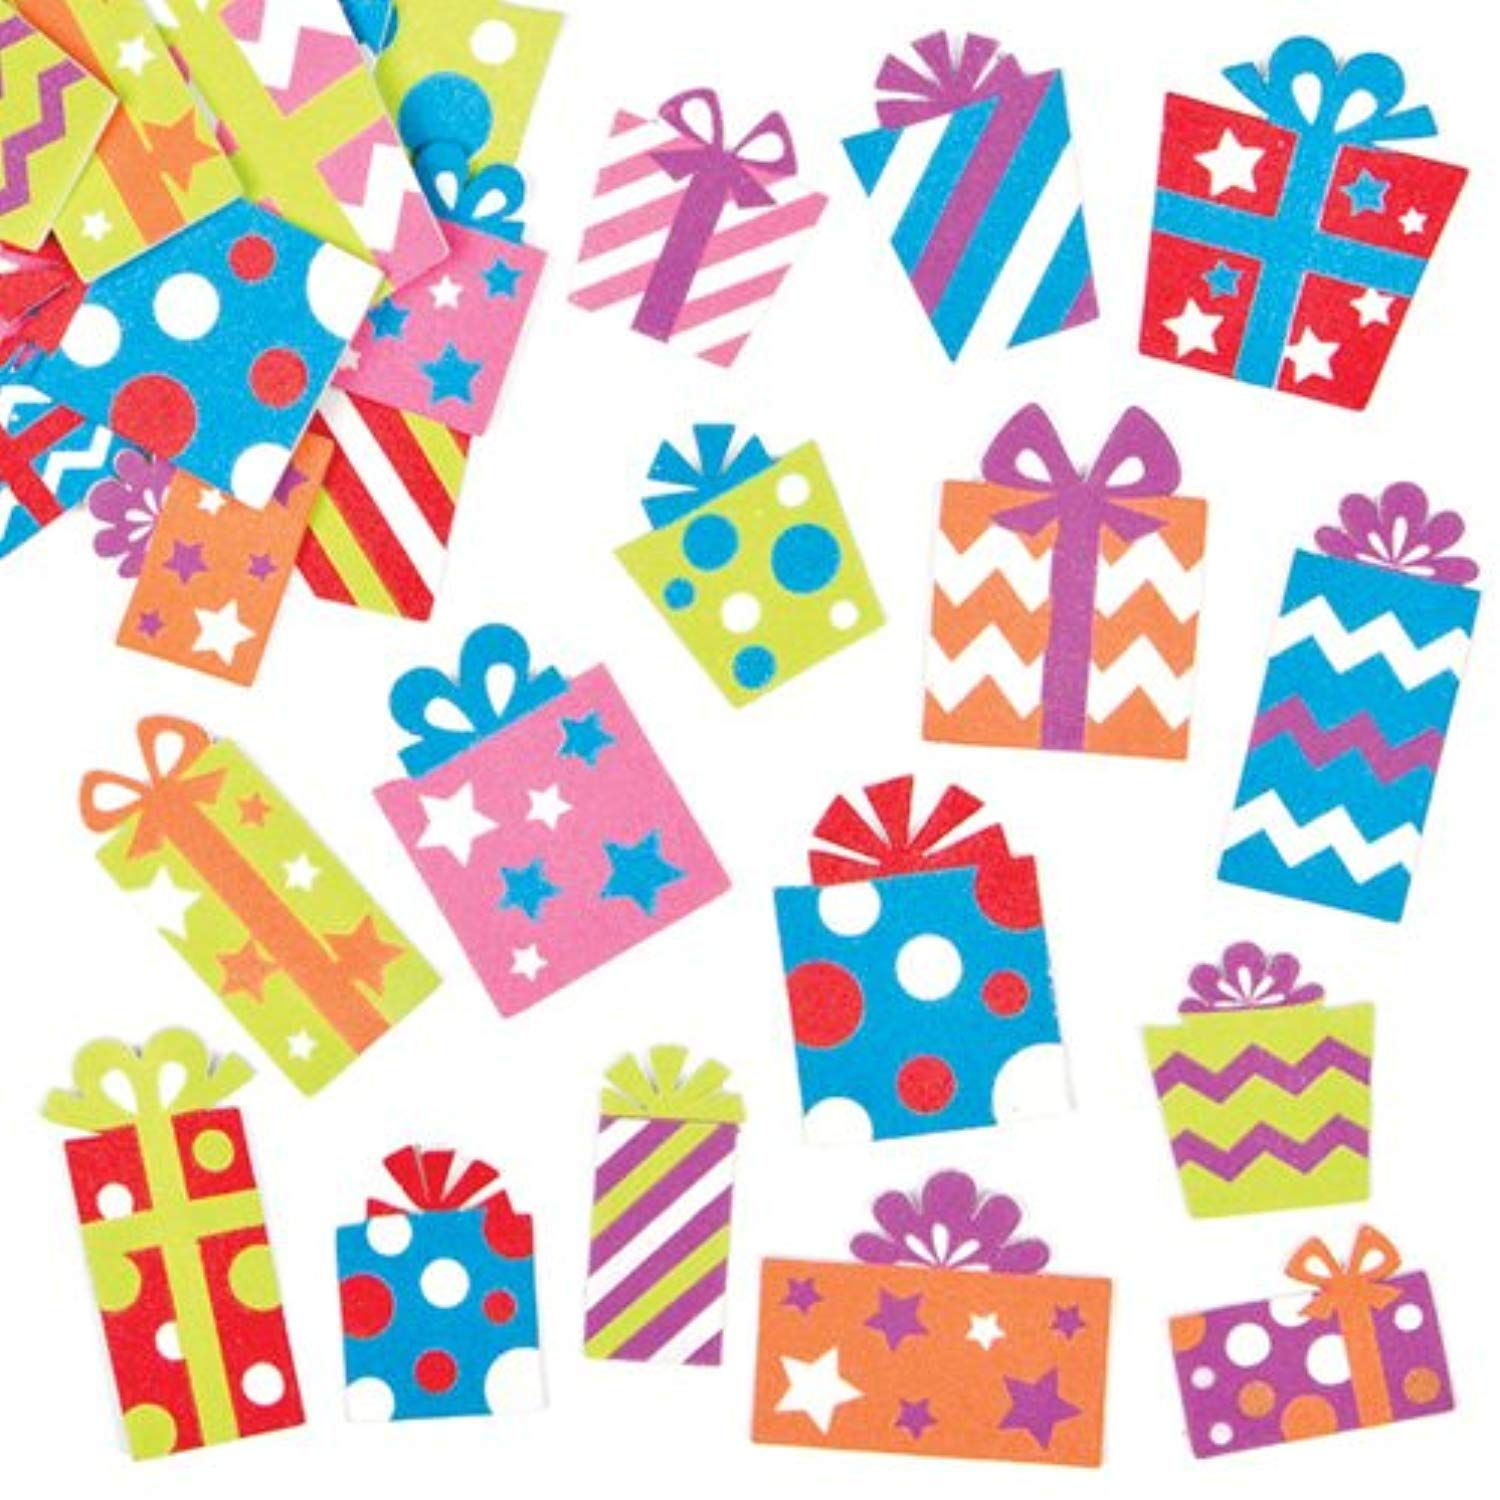 Christmas present foam stickers for children to decorate